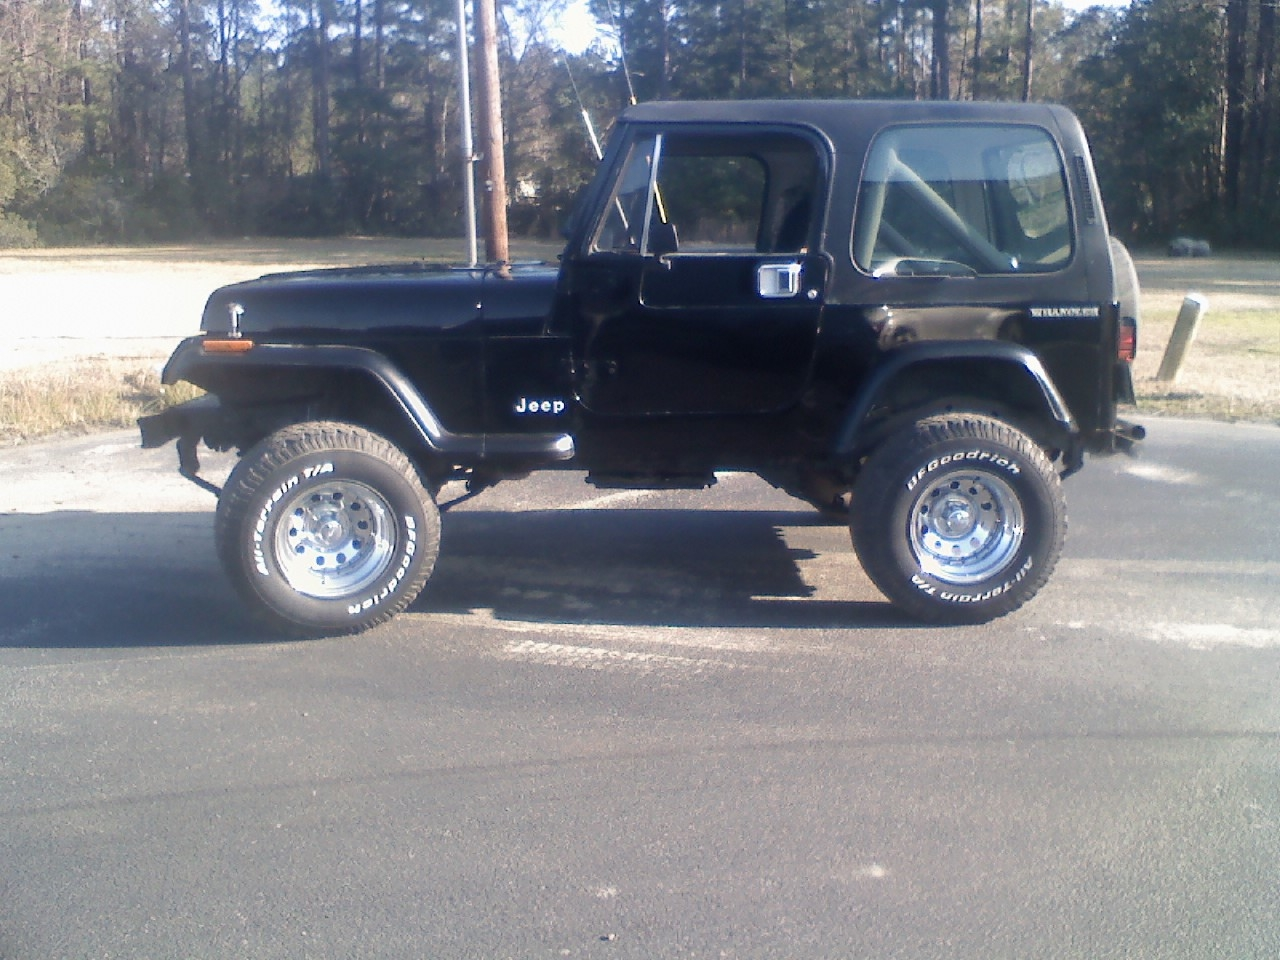 89jeepowners Profile In Springfield Ga 1988 Jeep Wrangler Hard Top Another 89jeepowner 1989 Post 12359370